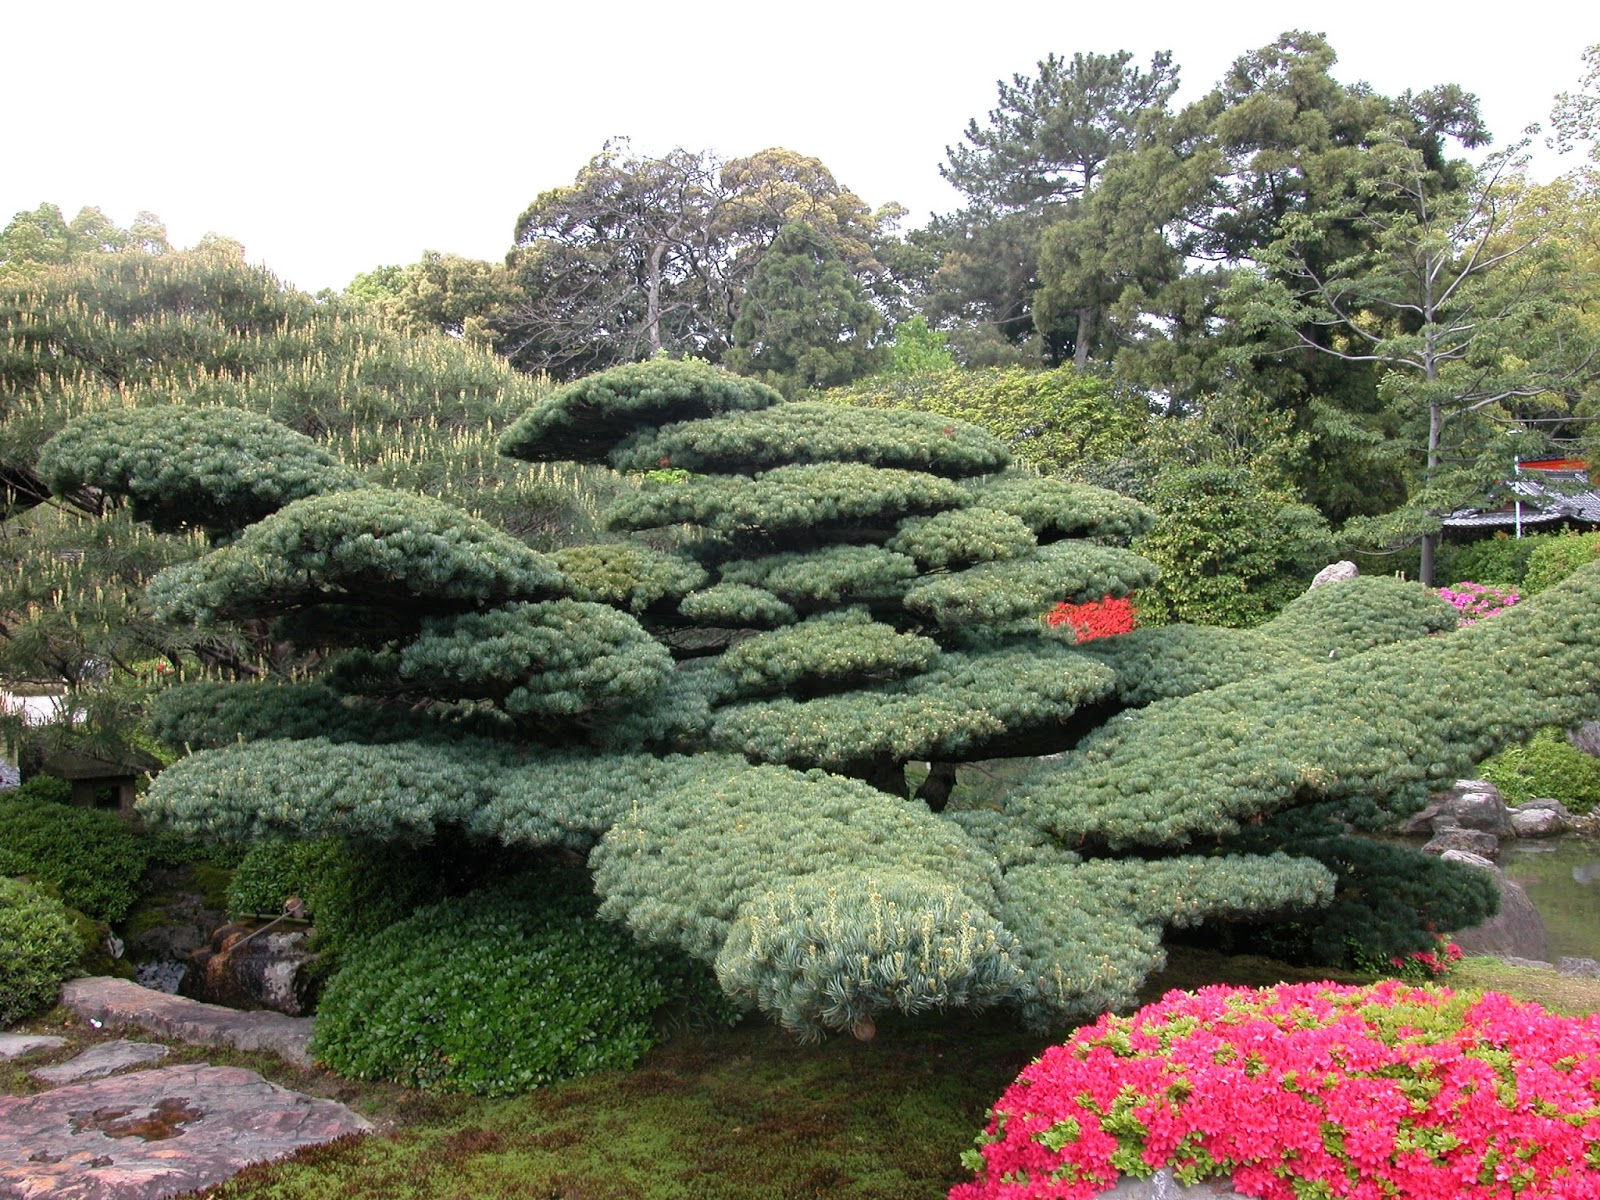 Robert Ketchell39s Blog Pines In The Japanese Garden